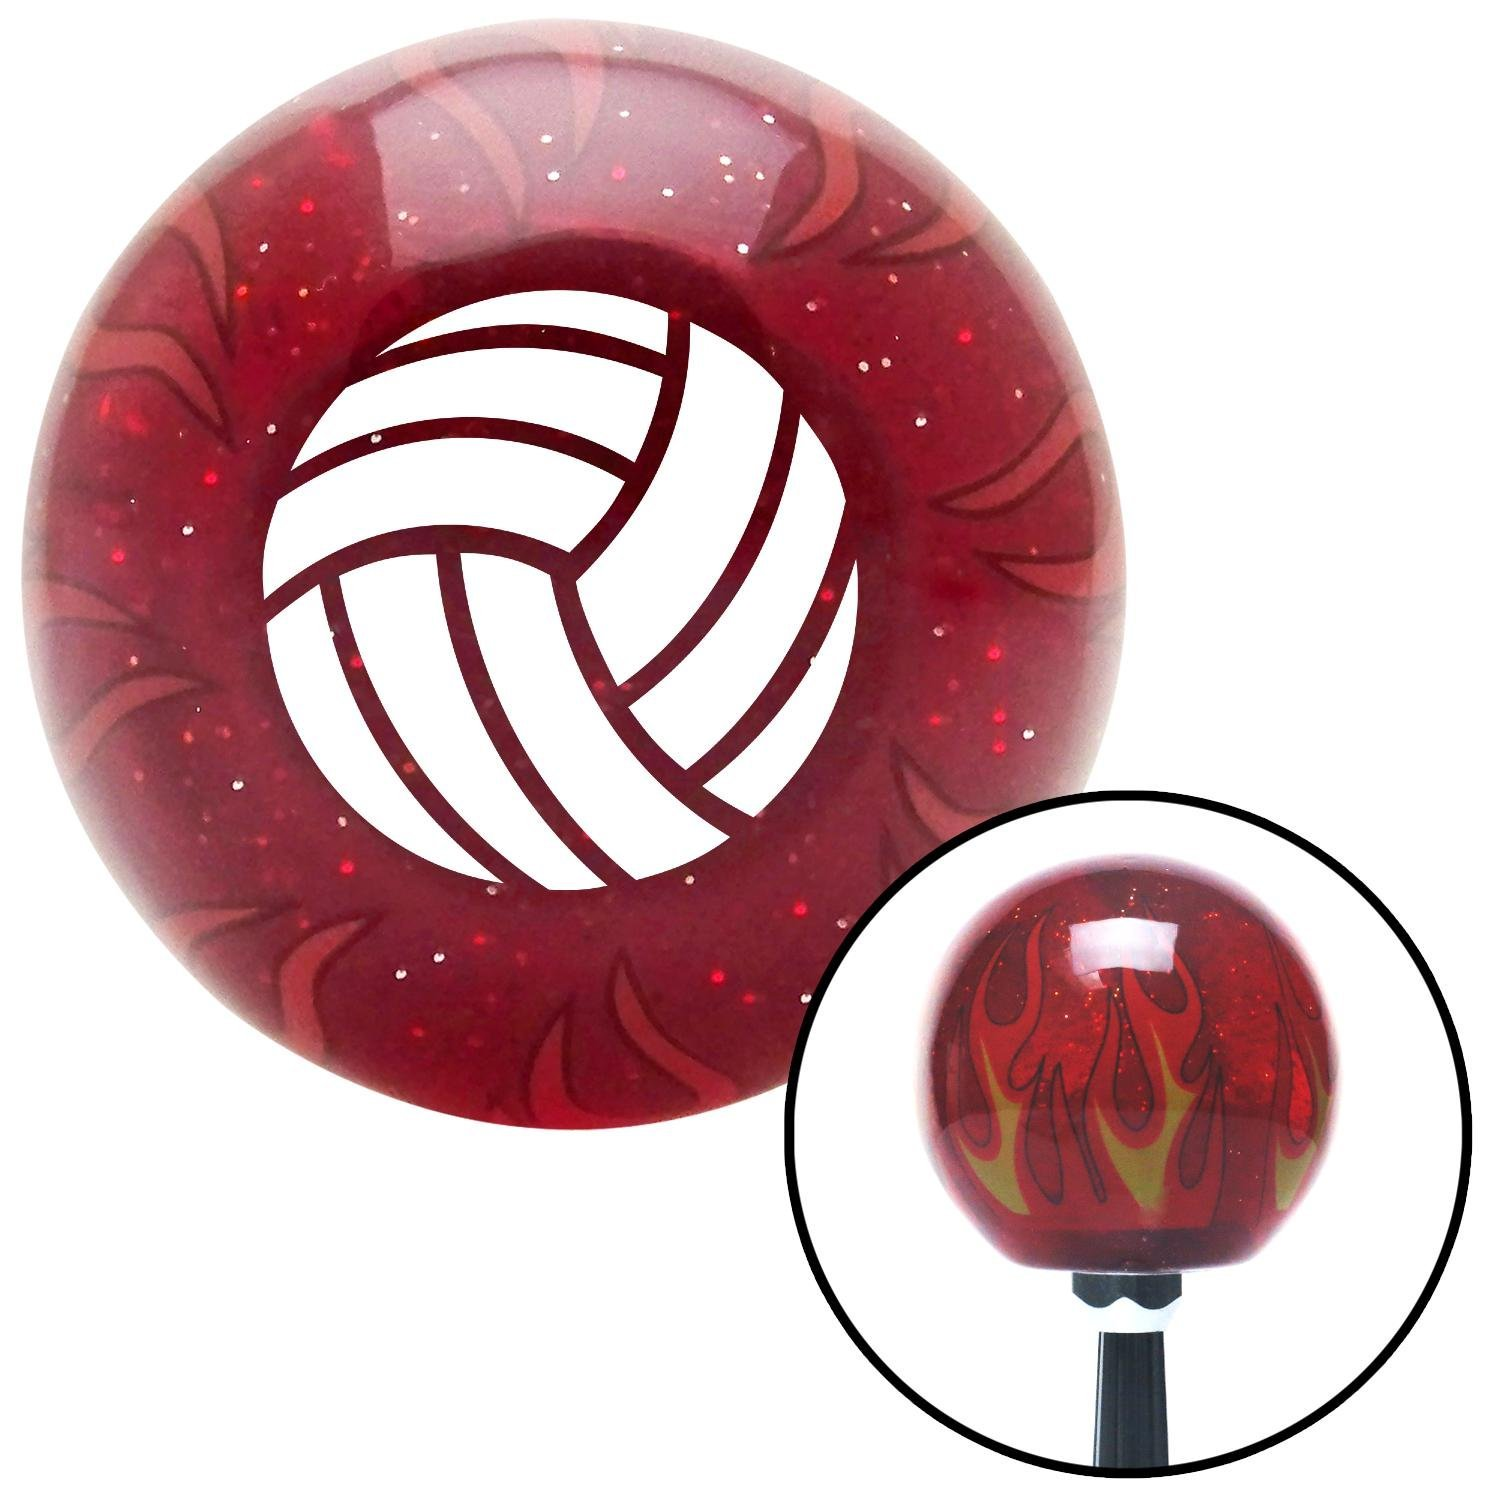 White Volleyball American Shifter 239556 Red Flame Metal Flake Shift Knob with M16 x 1.5 Insert